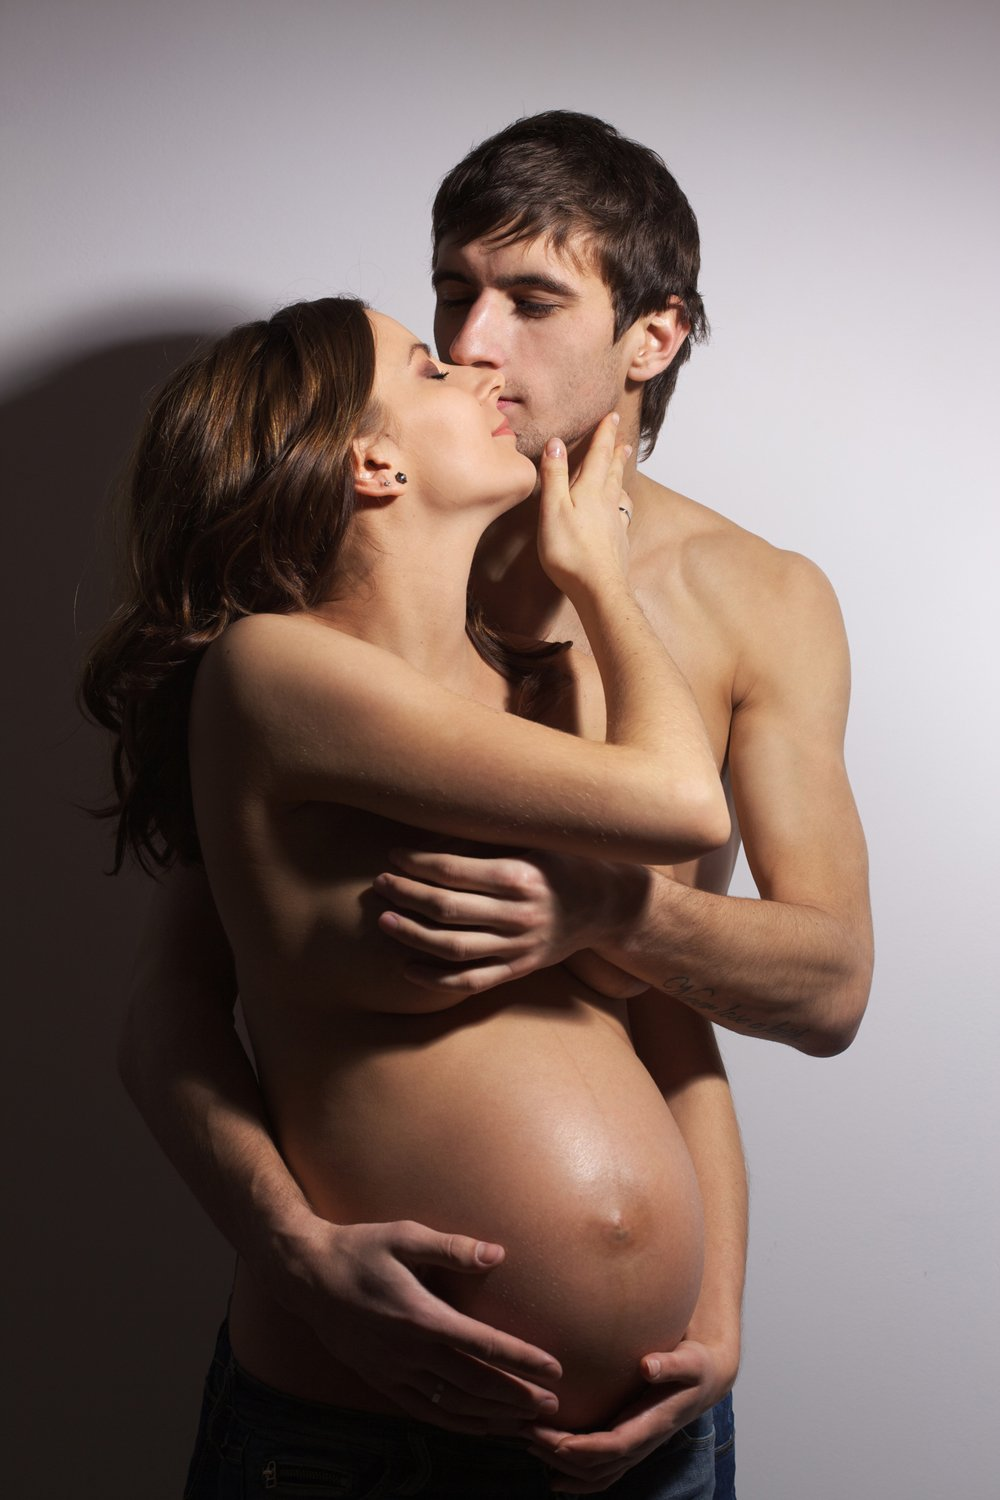 Anal Sex During Pregnancy What You Need To Know-6170